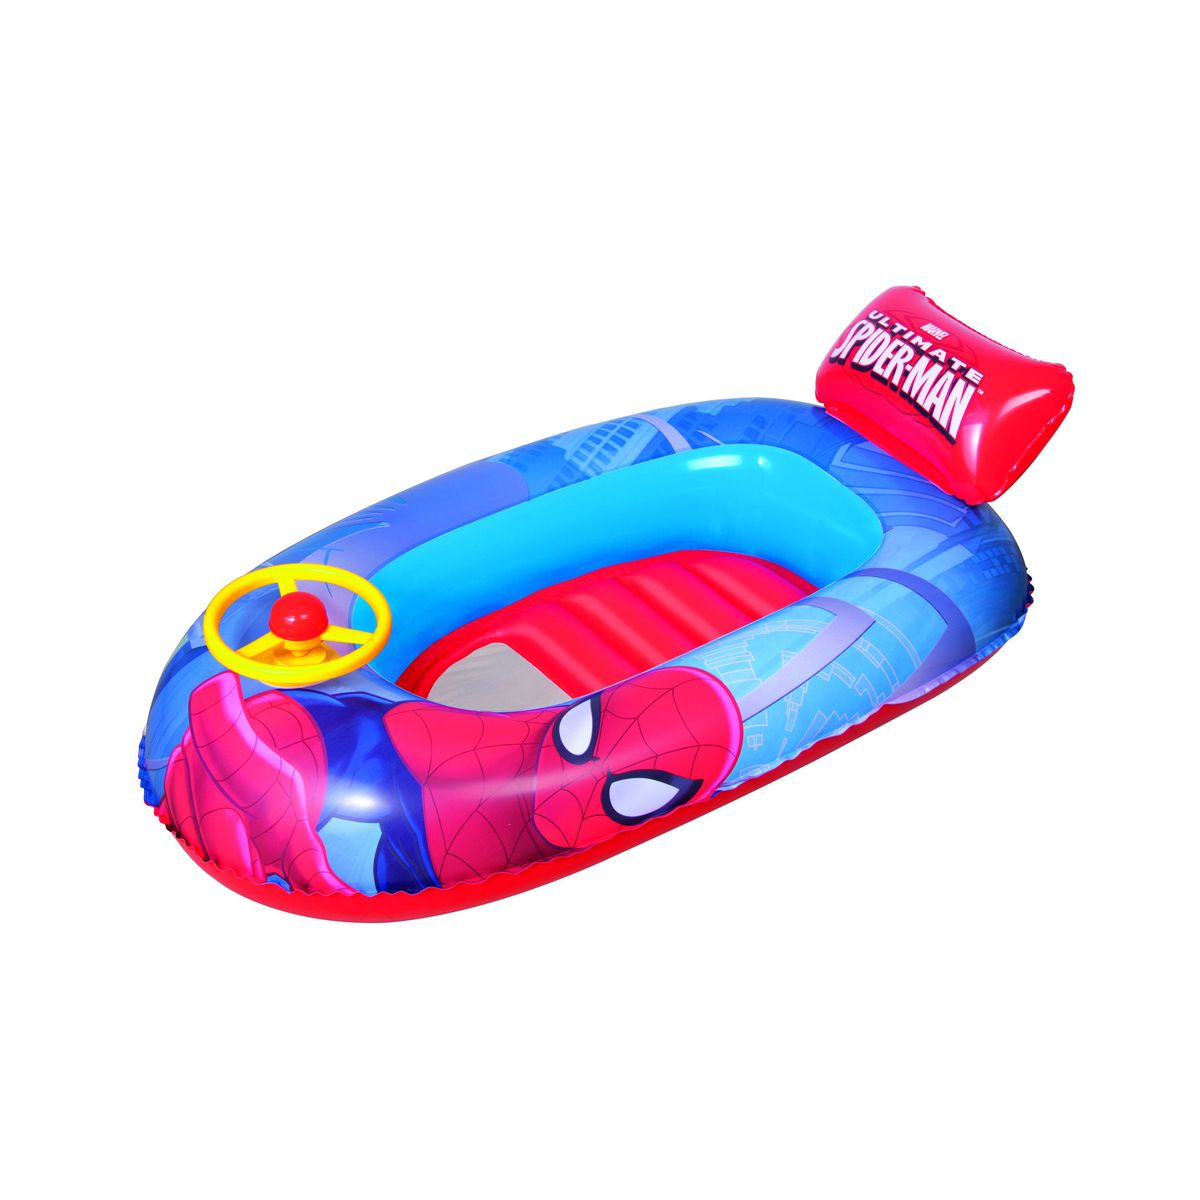 Bestway Pools Cape Town Bestway Spiderman Pool Boat Red Buy Online In South